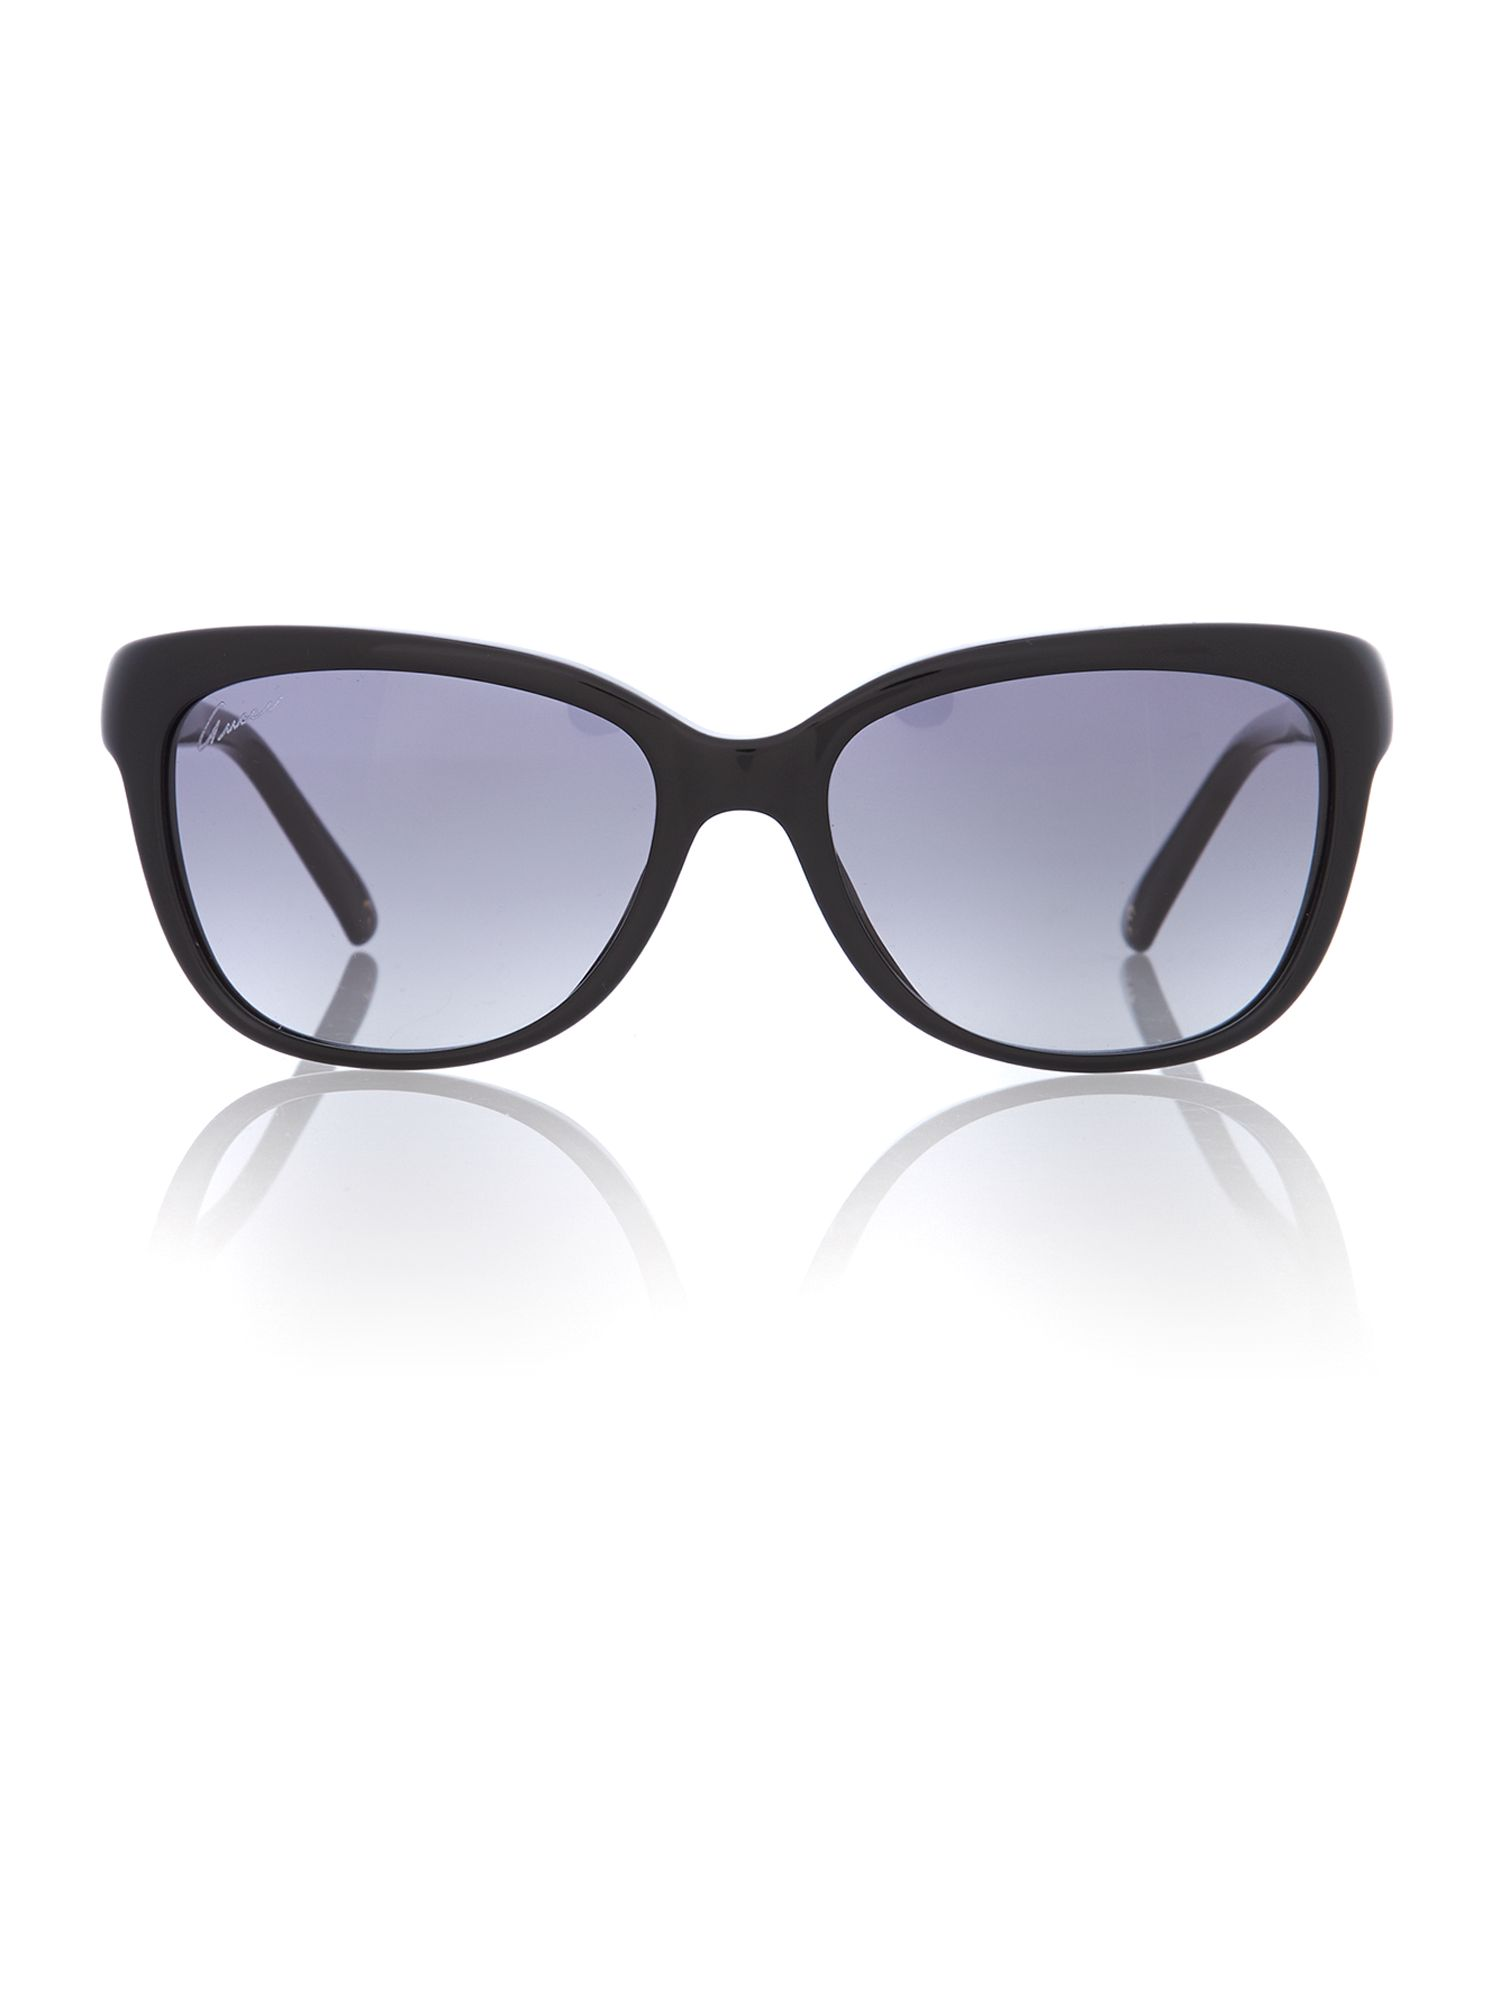 Women grey grad squared sunglasses